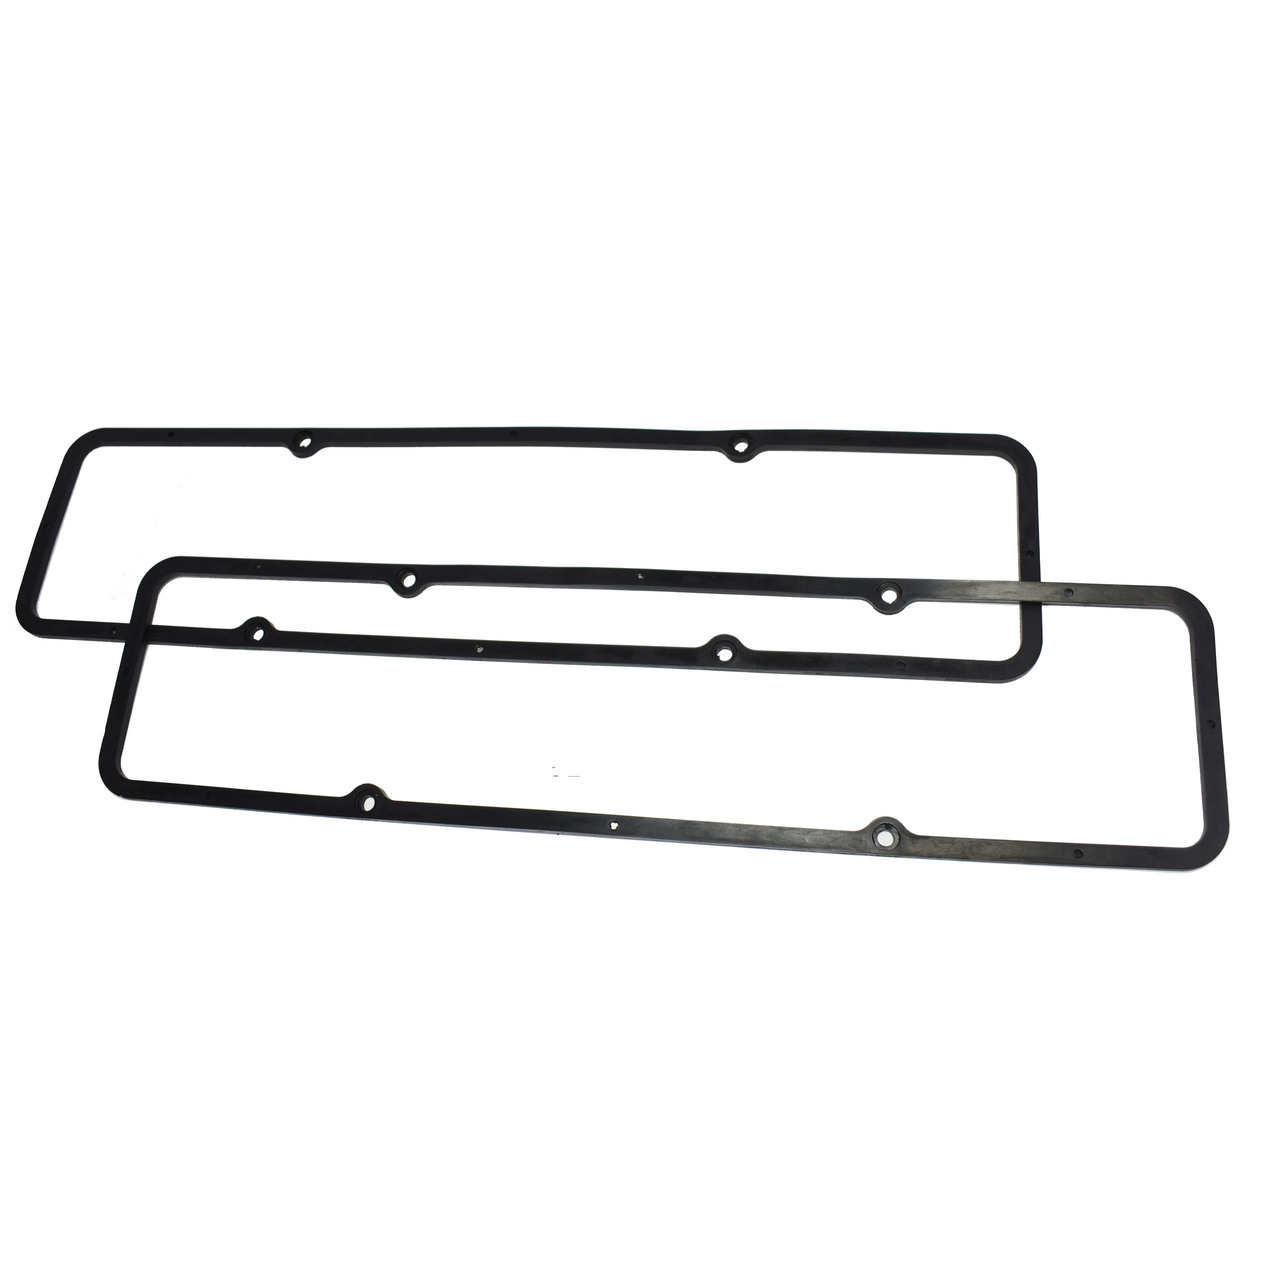 A-Team Performance CHEVY SMALL BLOCK 262 265 267 283 302 305 307 327 350 400 PERIMETER-BOLT RUBBER VALVE COVER GASKETS